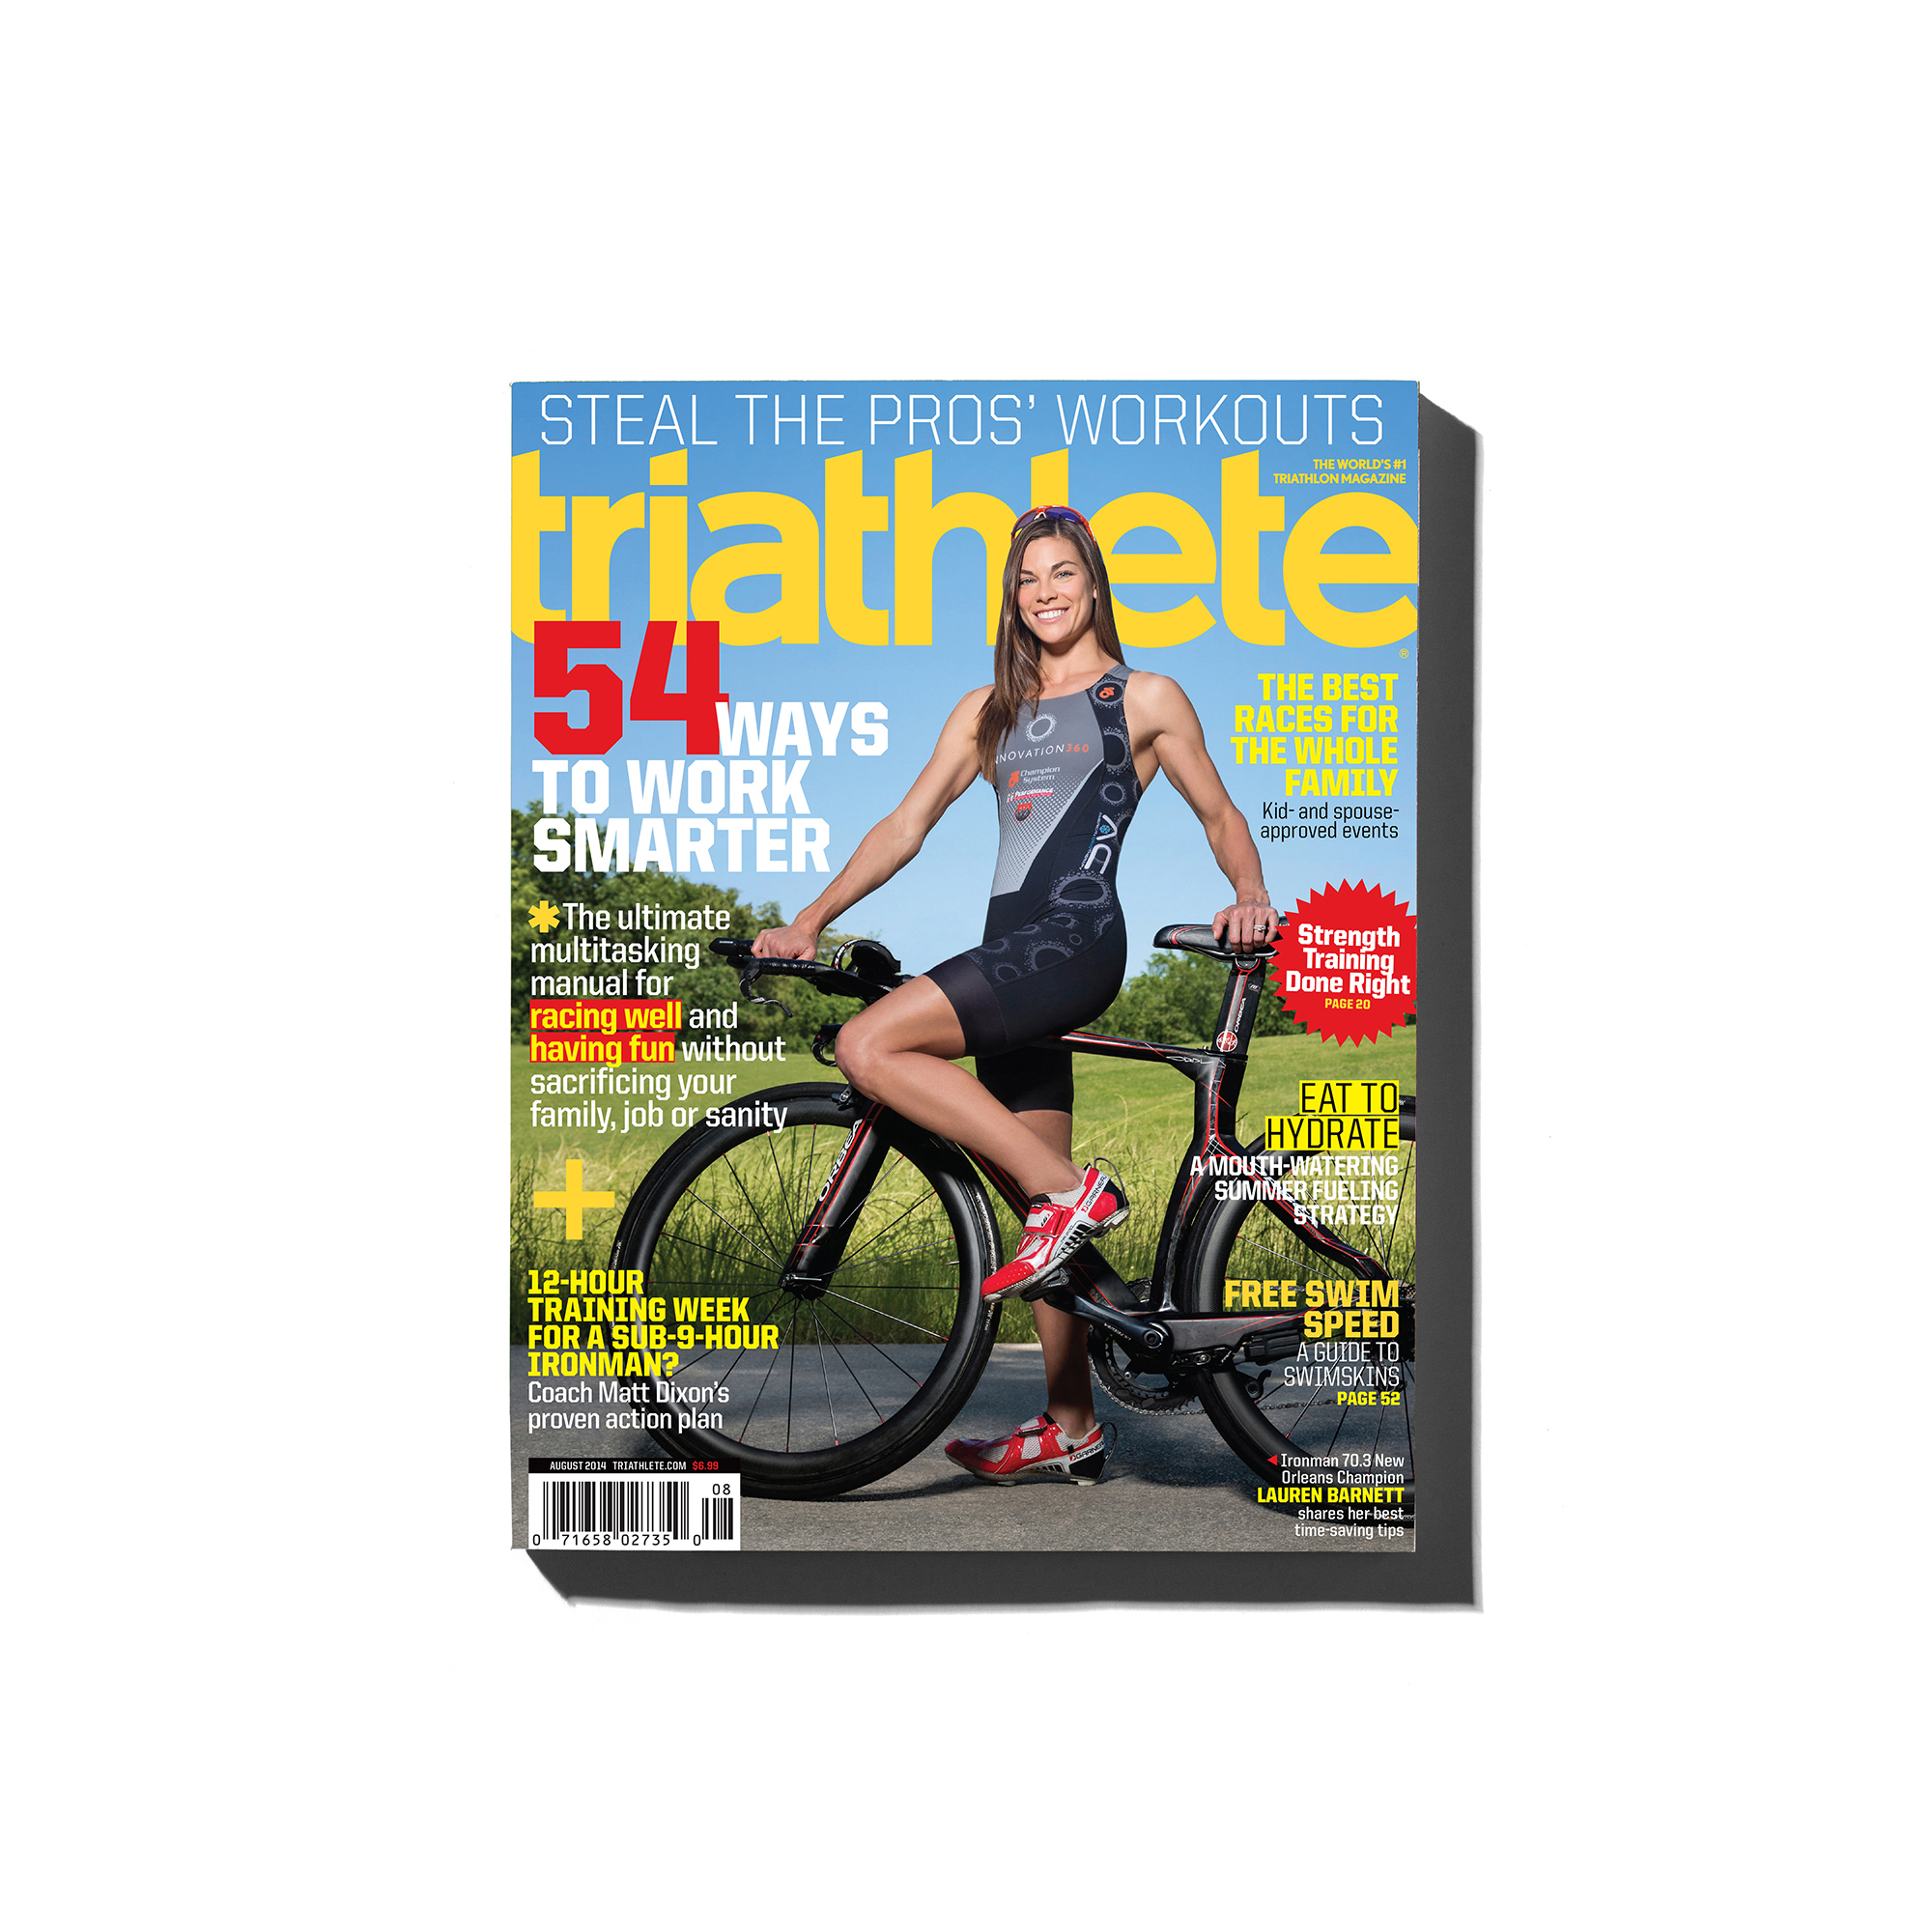 Lauren Barnett, professional triathlete, is photographed in The Woodlands, Texas for the cover of Triathlete magazine by sports photographer, Todd Spoth.